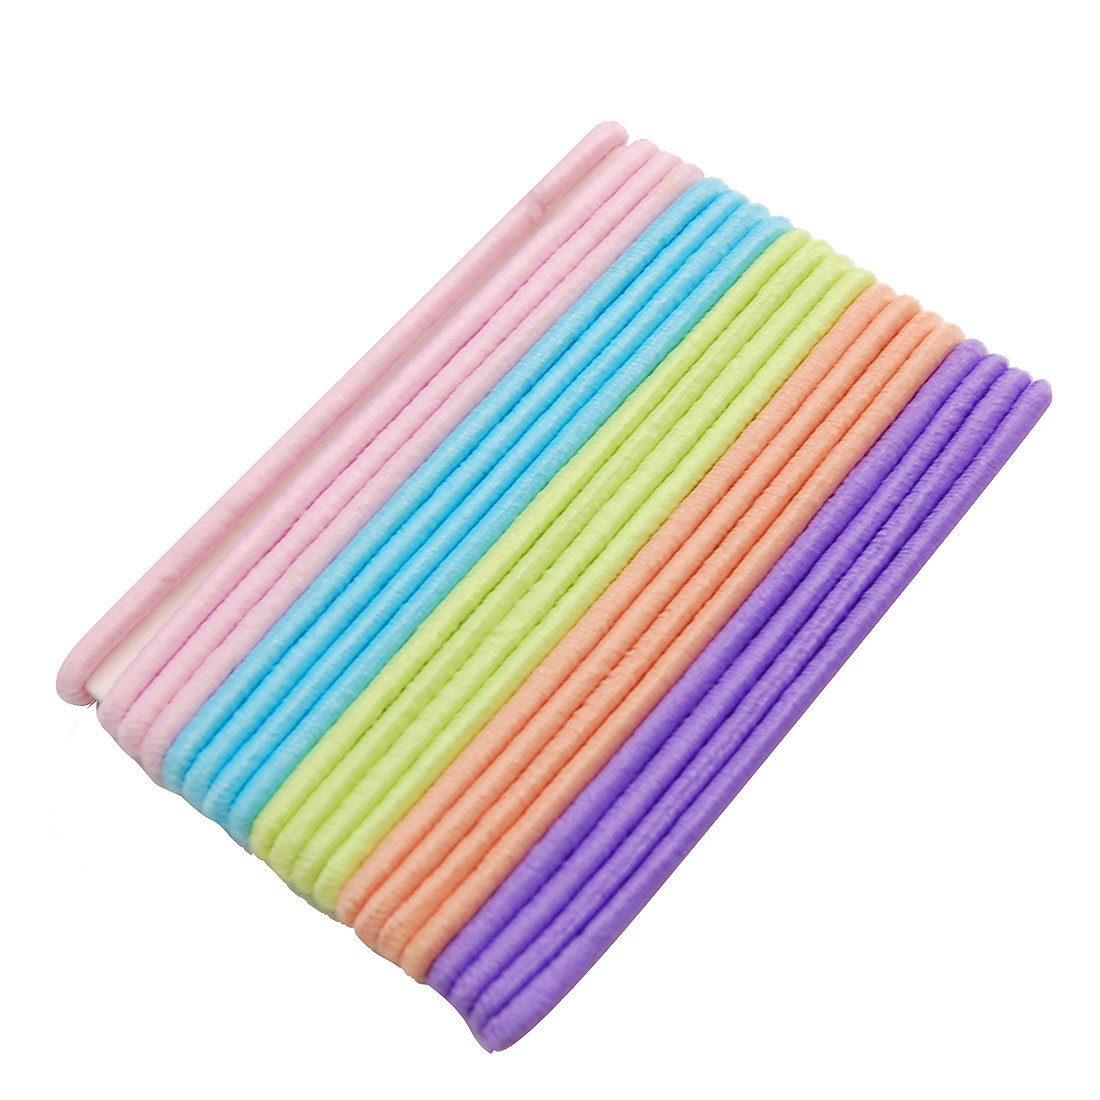 Colorful Elastic Rubber Flexible Hair Bands 20PCS